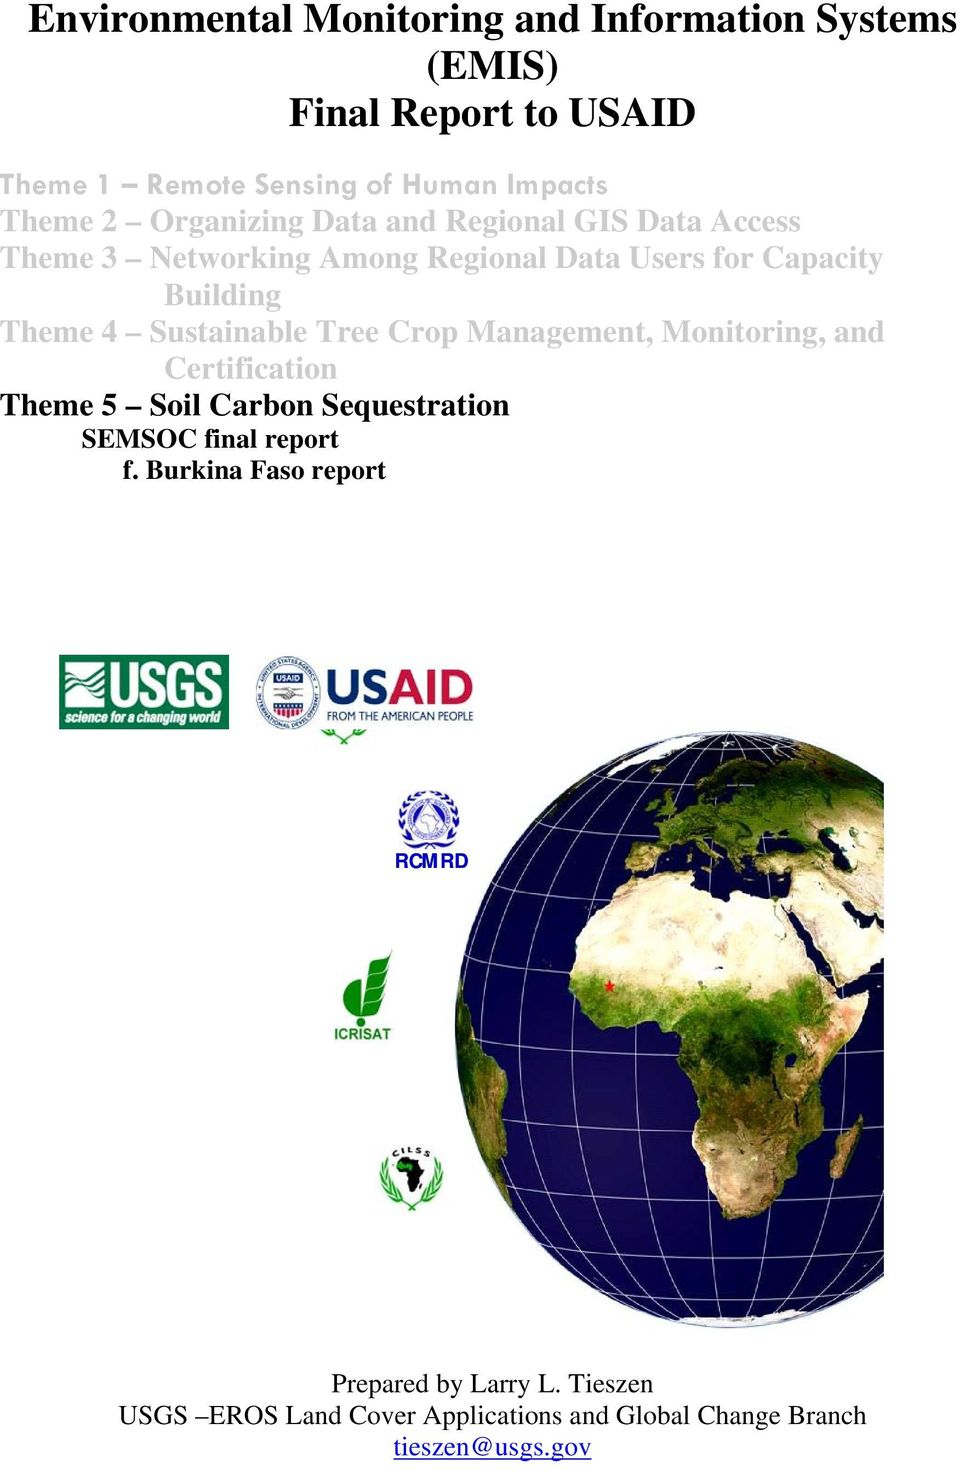 Sustainable Tree Crp Management, Mnitring, and Certificatin Theme 5 Sil Carbn Sequestratin SEMSOC final reprt f.